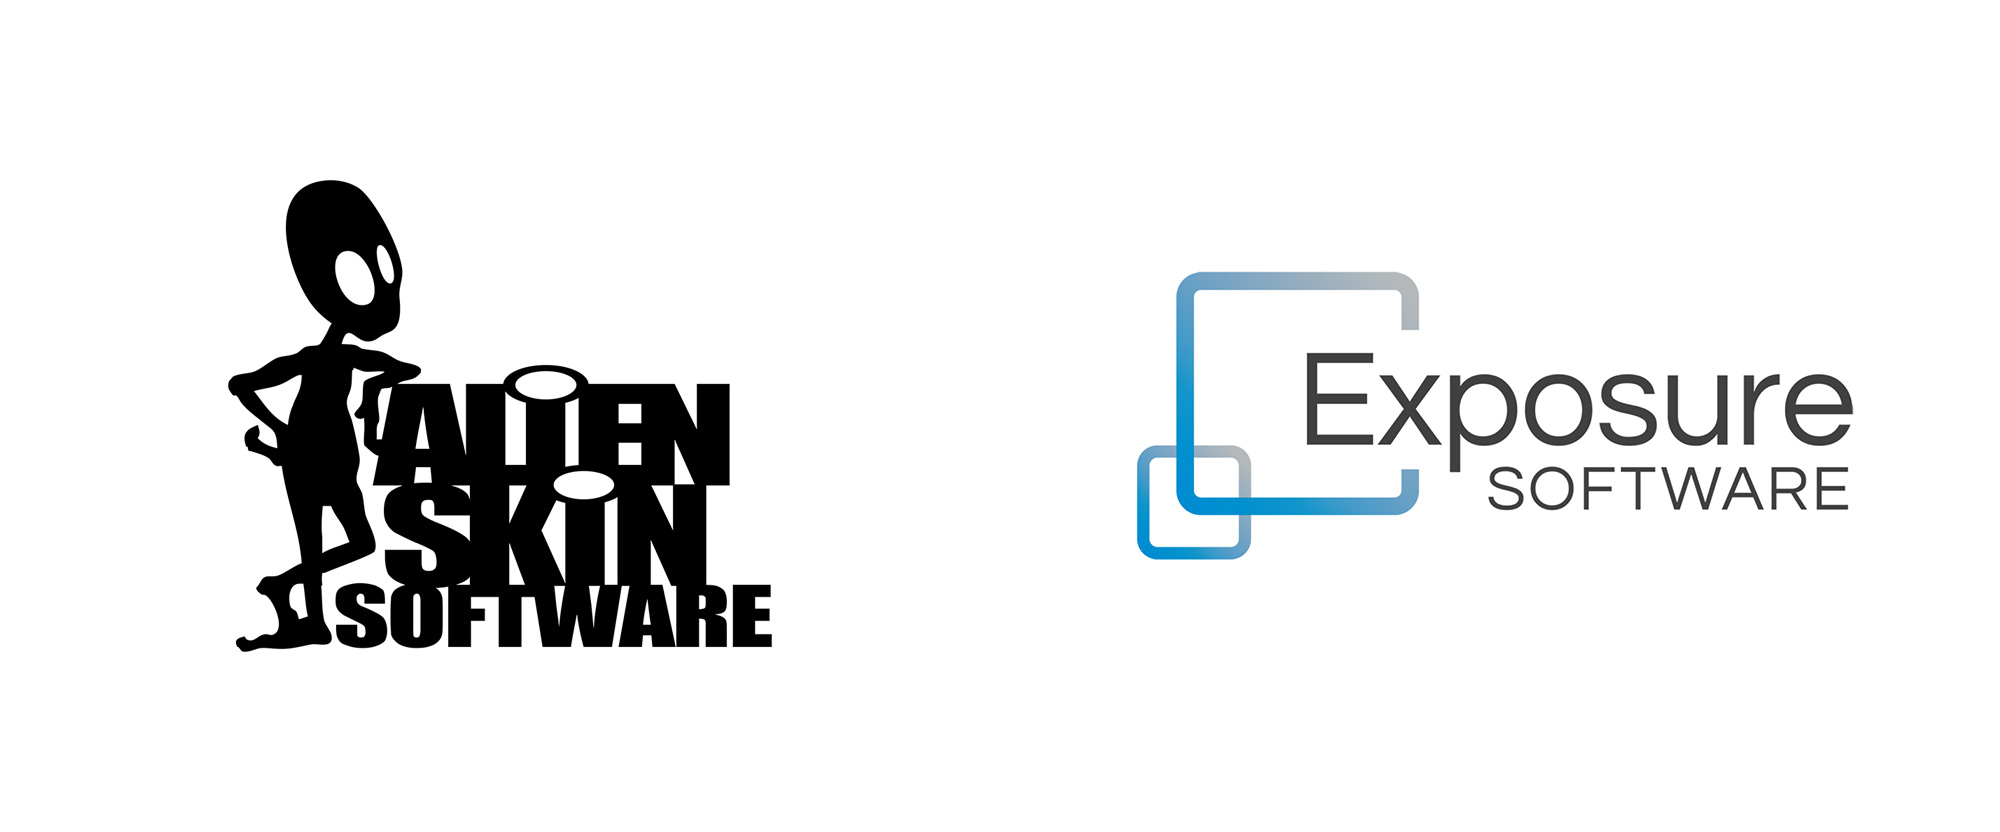 New Name and Logo for Exposure Software